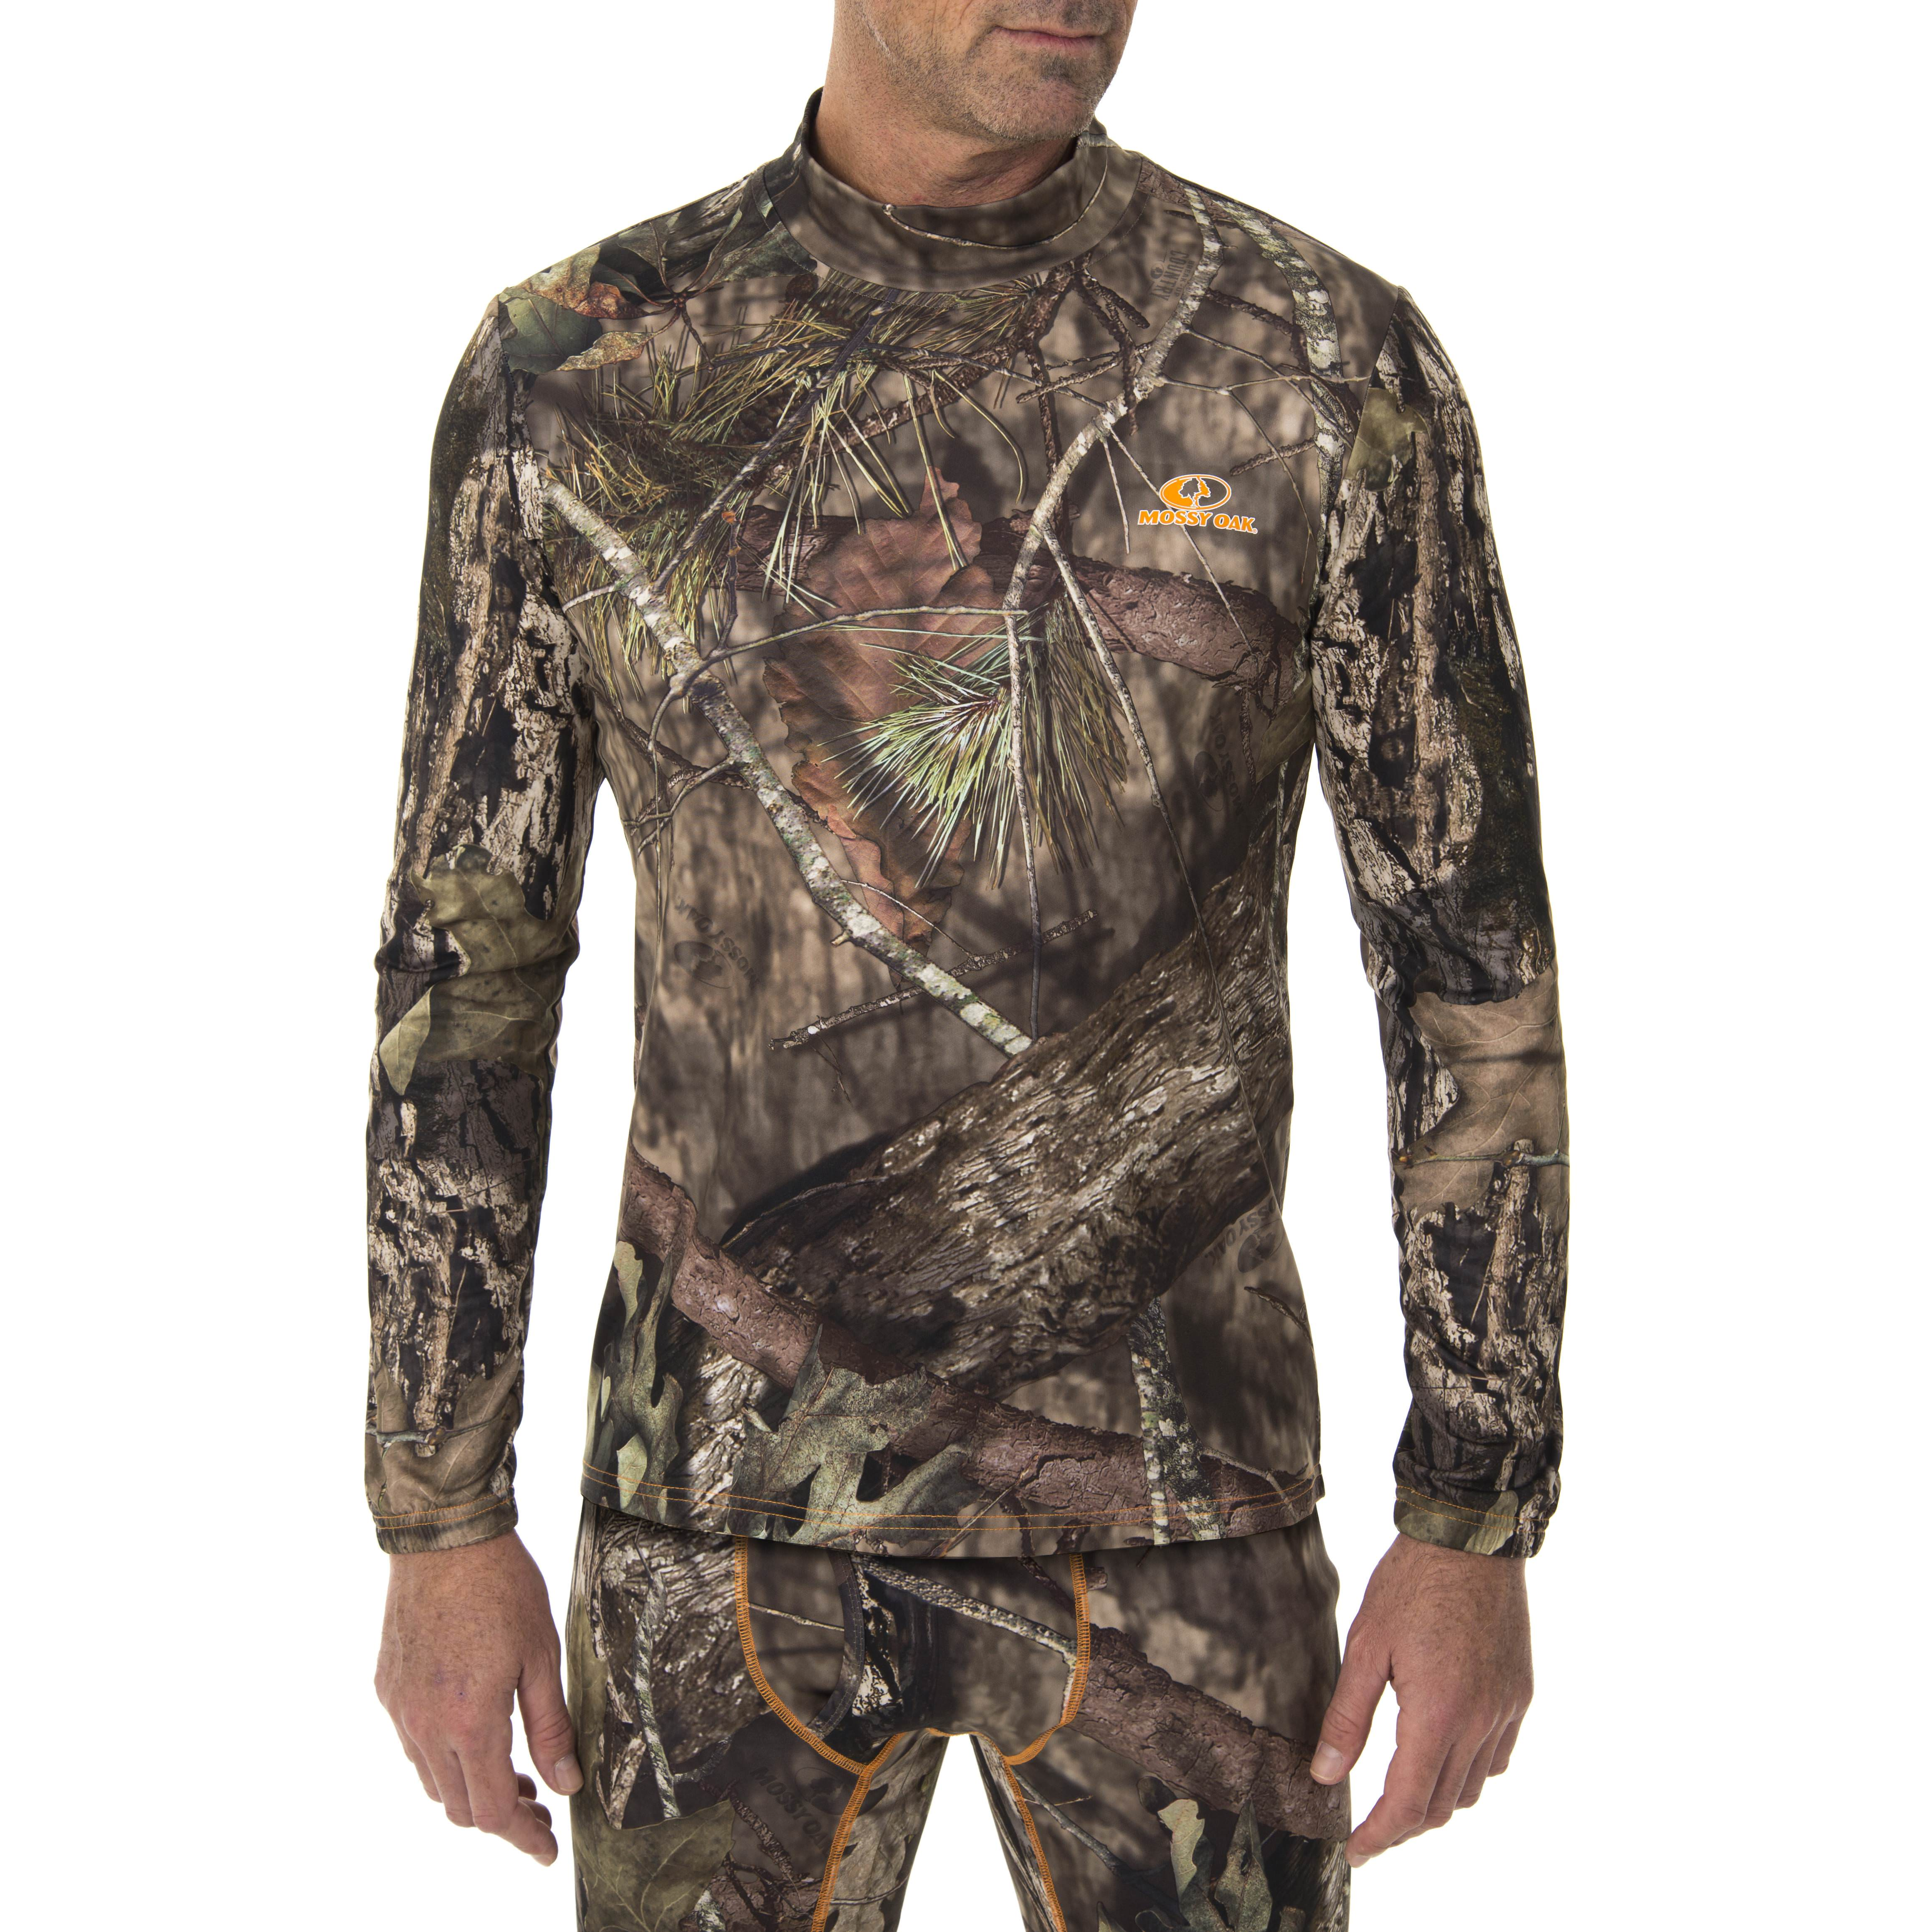 Mossy Oak Men's Ultimate Cold Gear Fitted Baselayer Top